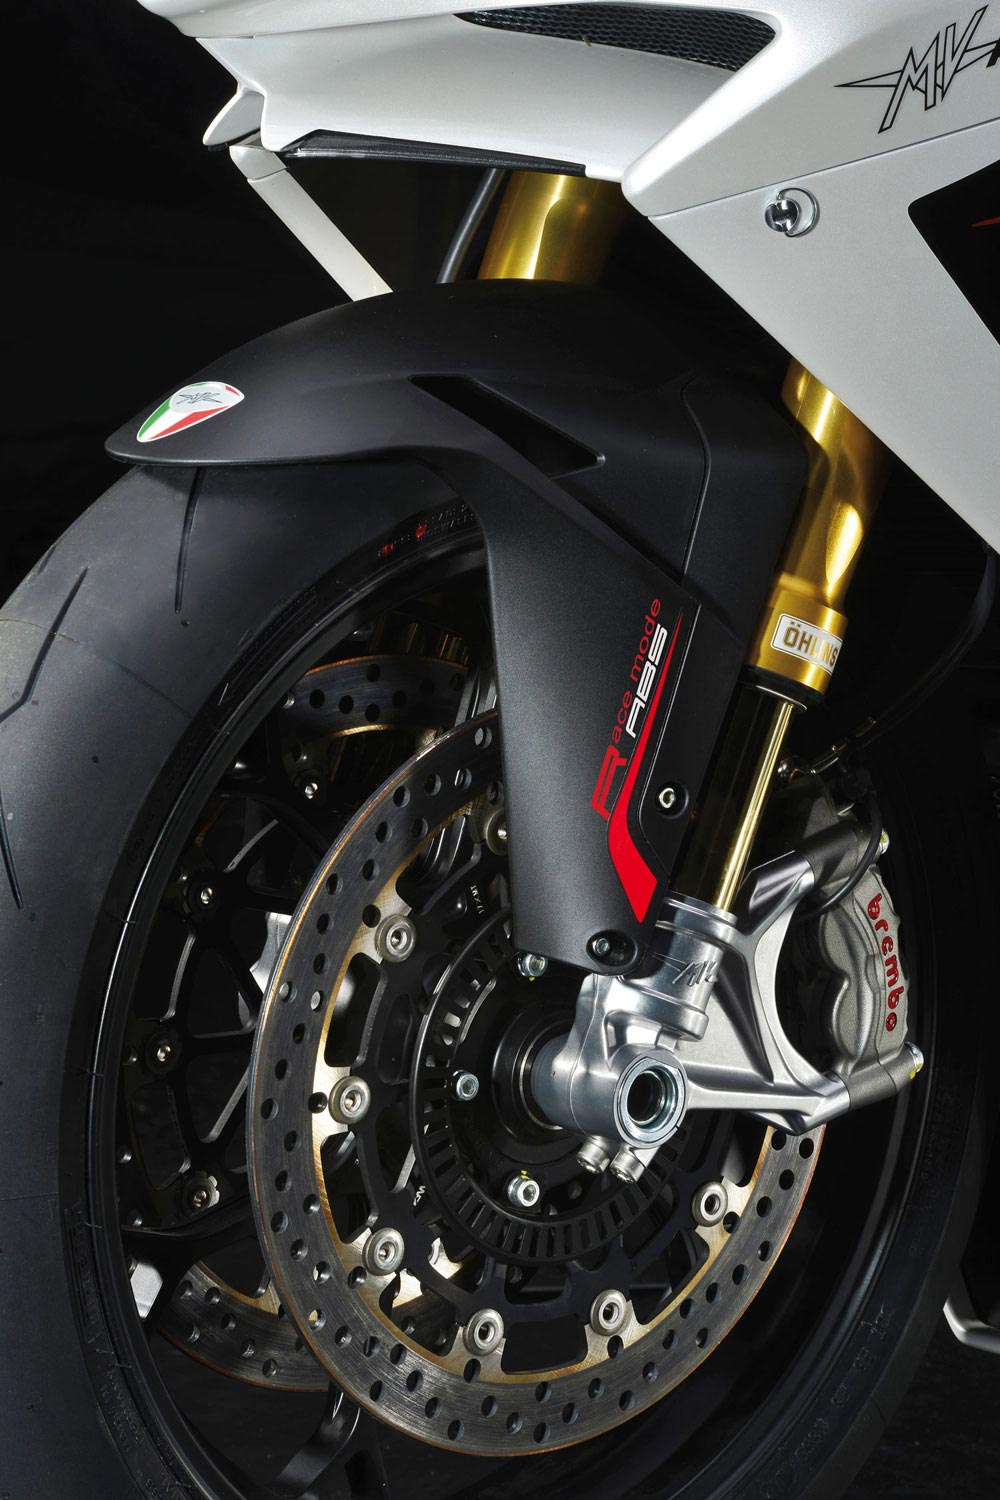 MV Agusta F4 Gets ABS for 2013 mv augusta f4 rr bosch abs